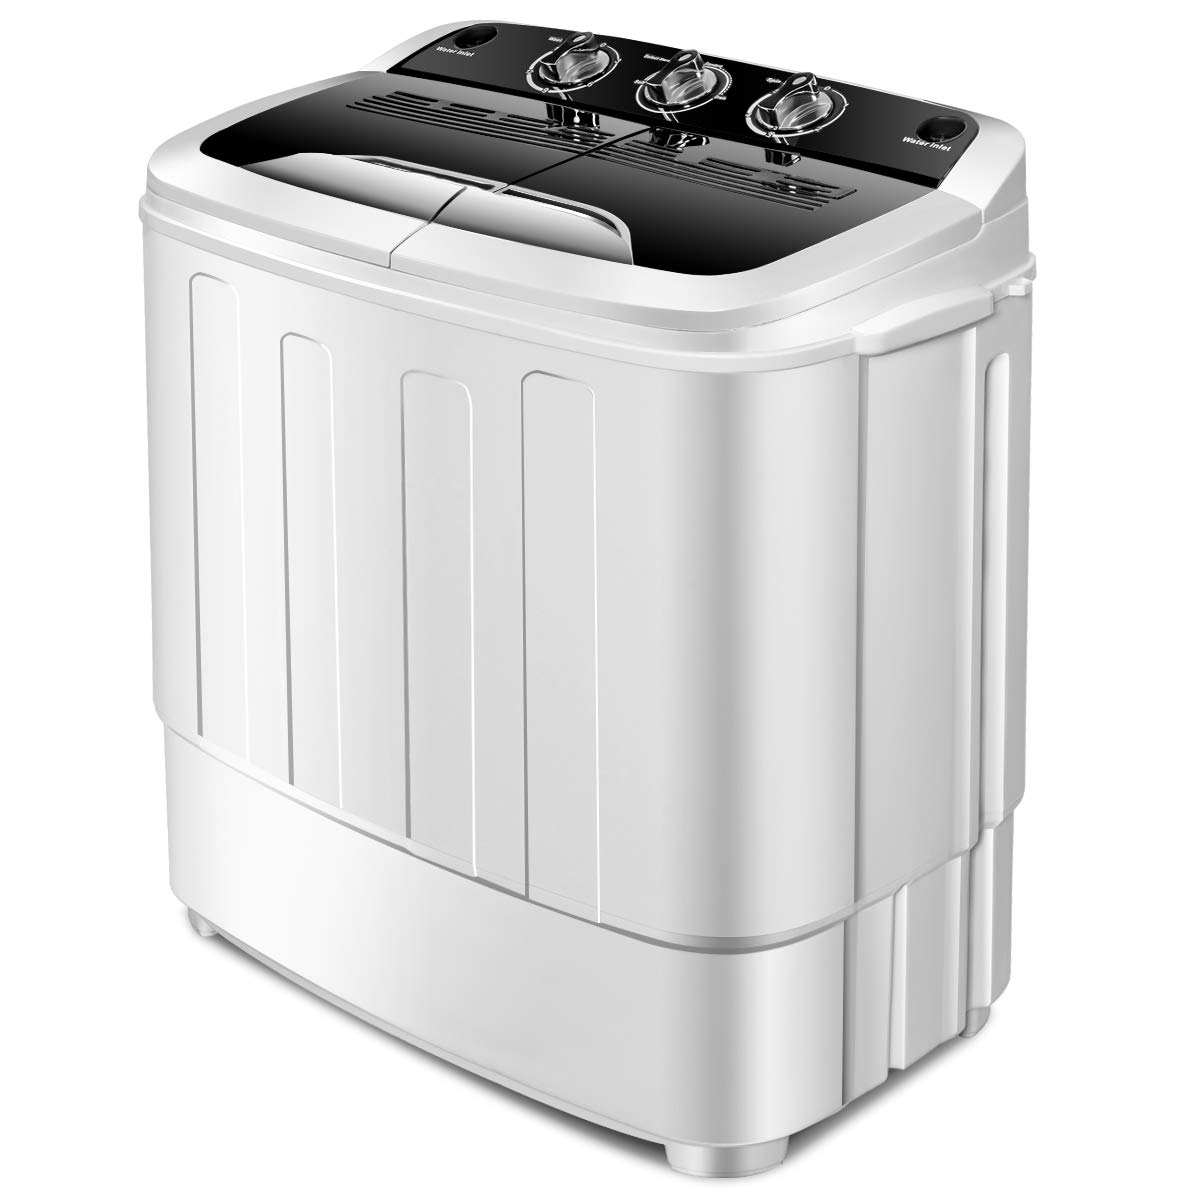 Giantex Portable Compact 13 Lbs Mini Twin Tub Washing Machine Washer Spin Dryer (Black& White) EP22930